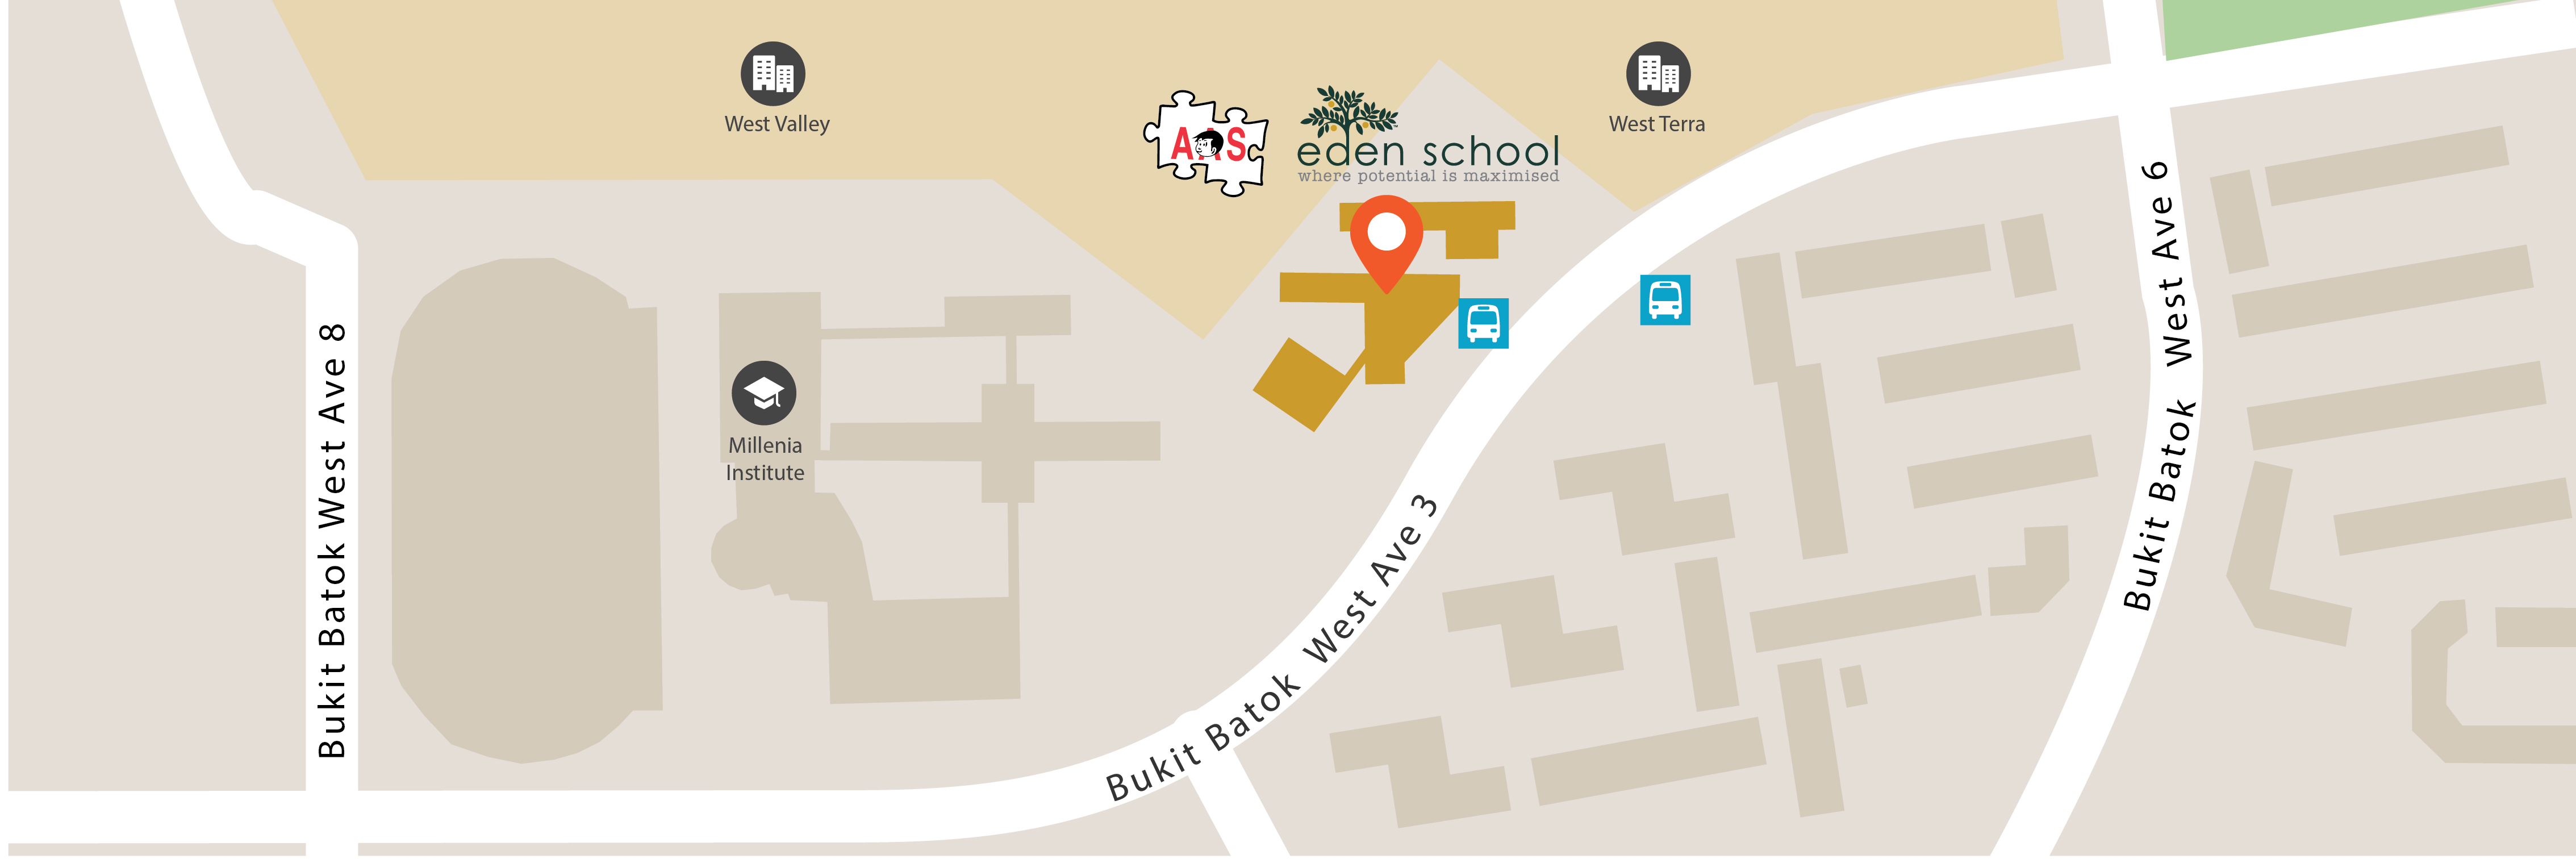 Pathlight School Campus Map